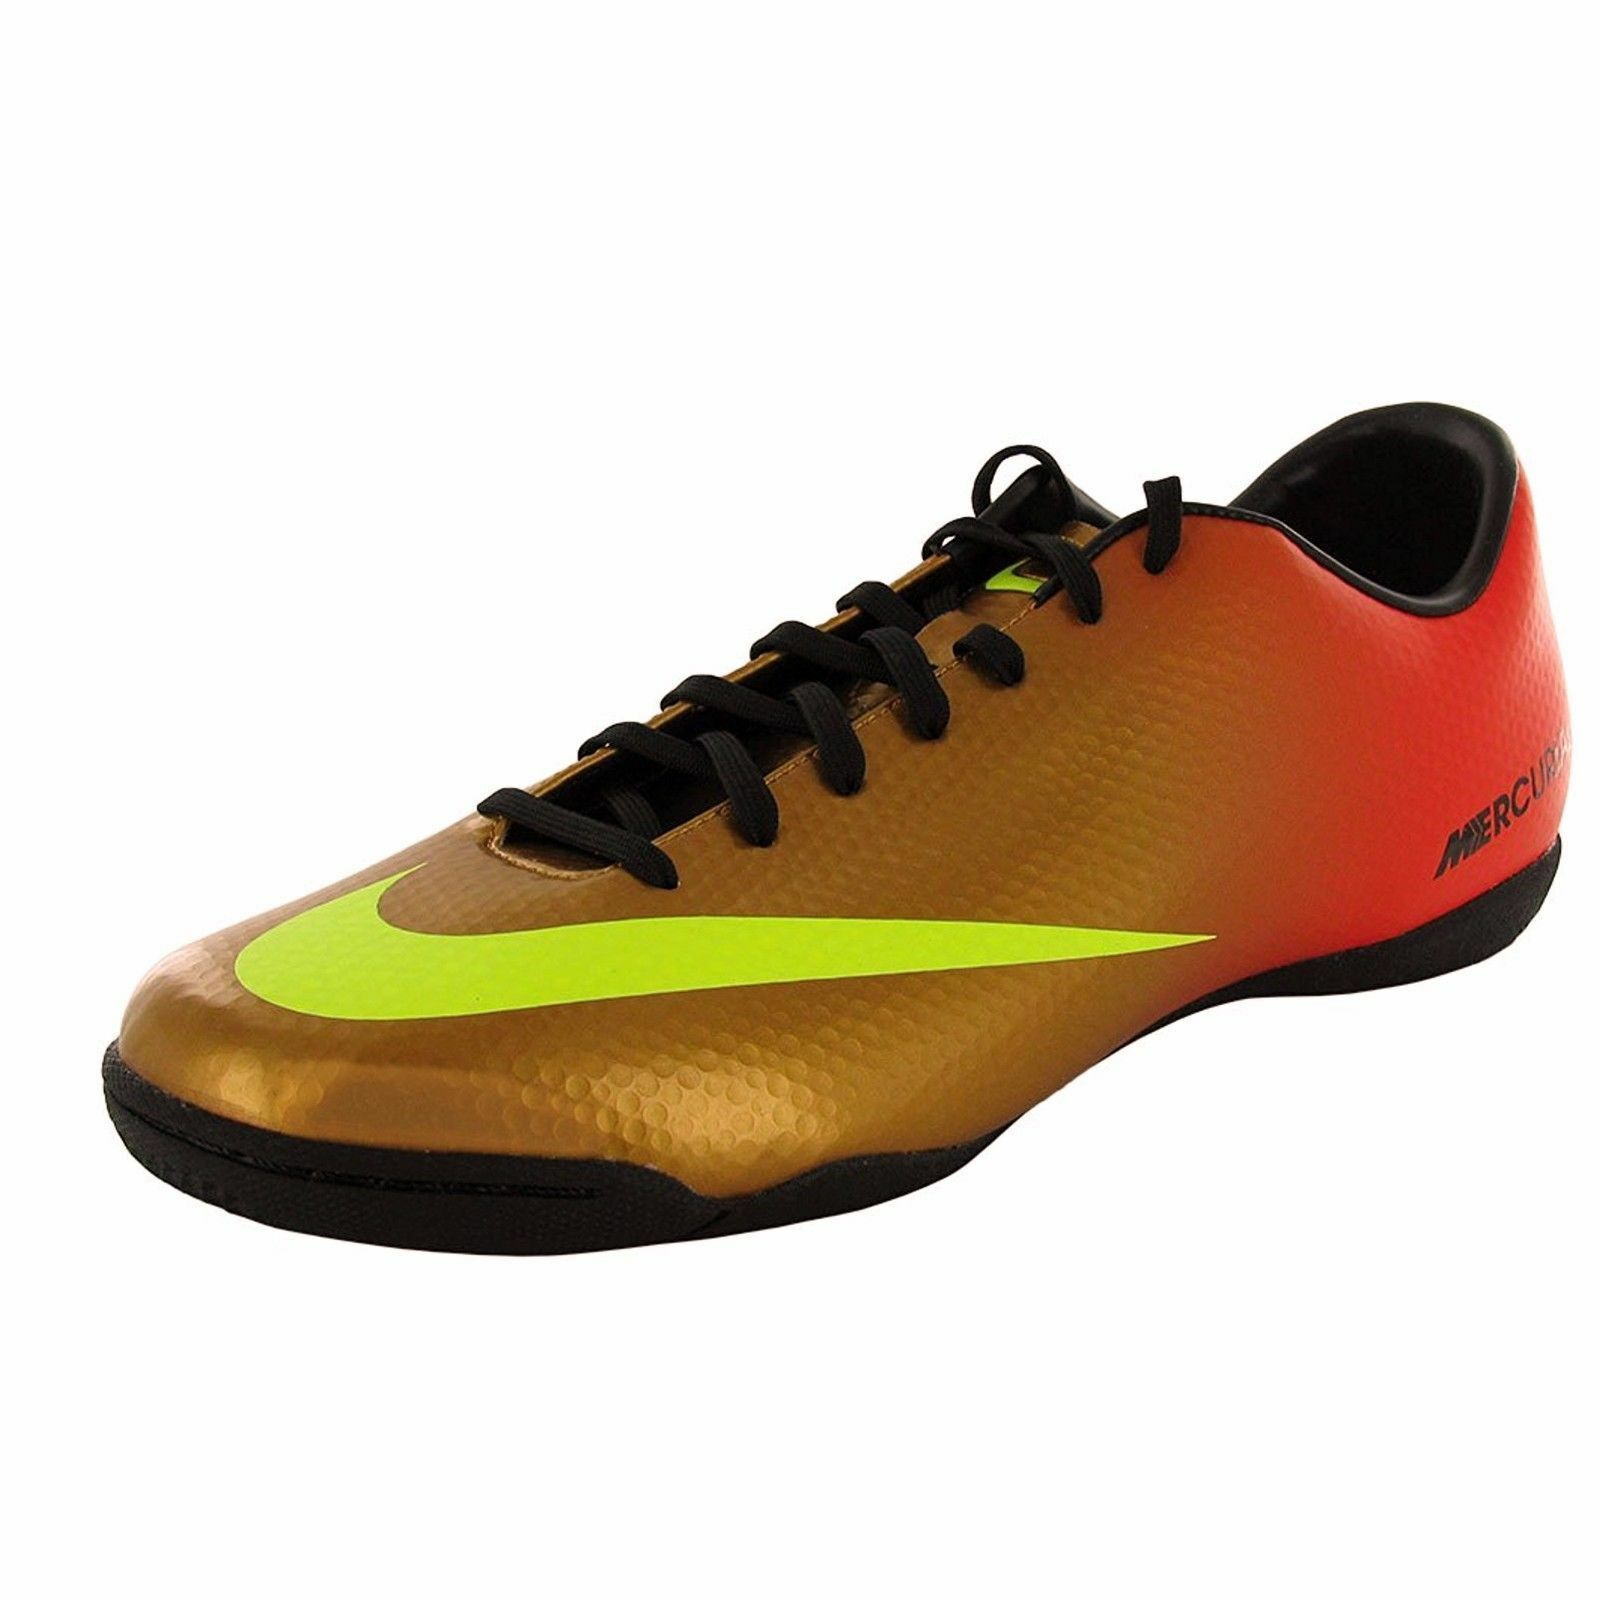 New NIKE MEN'S MERCURIAL VICTORY IV IC SOCCER SHOES 555614-778 size 8